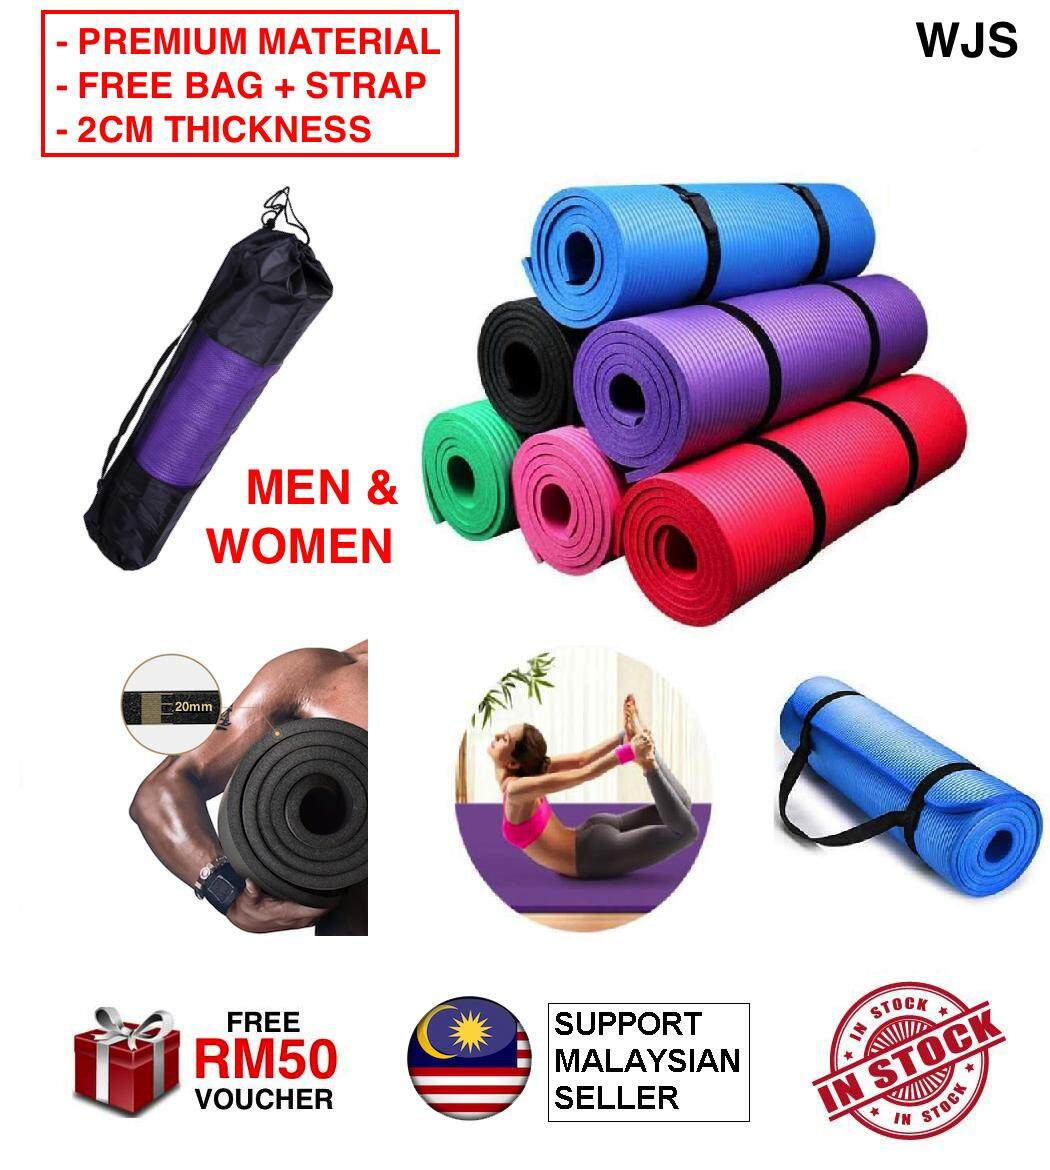 (EXTRA LARGE, EXTRA THICK, EXTRA WIDE) WJS Unisex Premium Grade Extra Thick Comfortable Multifunction Yoga Mat Yoga-Mat Anti-skid Non Slip Gym Fitness Cushion MULTICOLOR UP TO 185CM [FREE RM 50 VOUCHER]